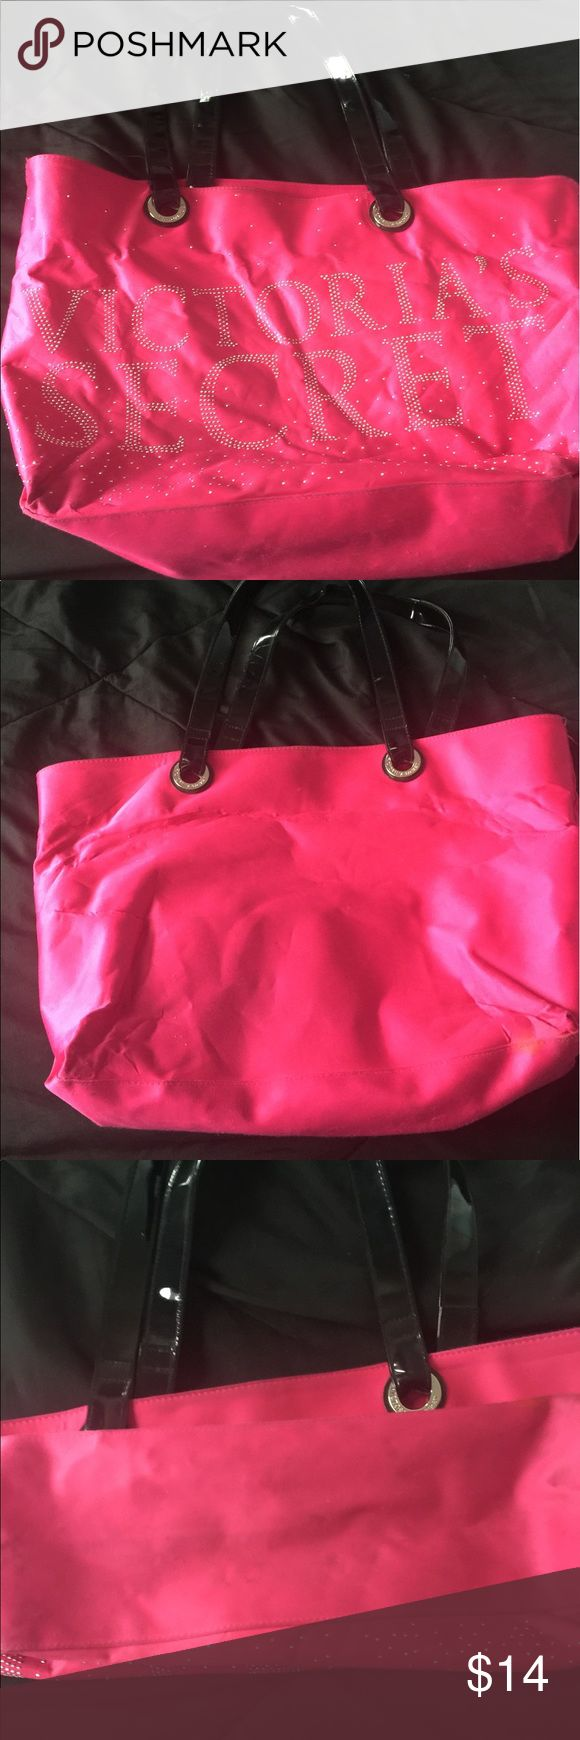 Tote bag Used but still in good condition. Has a few minor flaws as shown in pictures but should come out with a good wash or wipe down. Reversible, great beach bag!!!! PINK Victoria's Secret Bags Totes